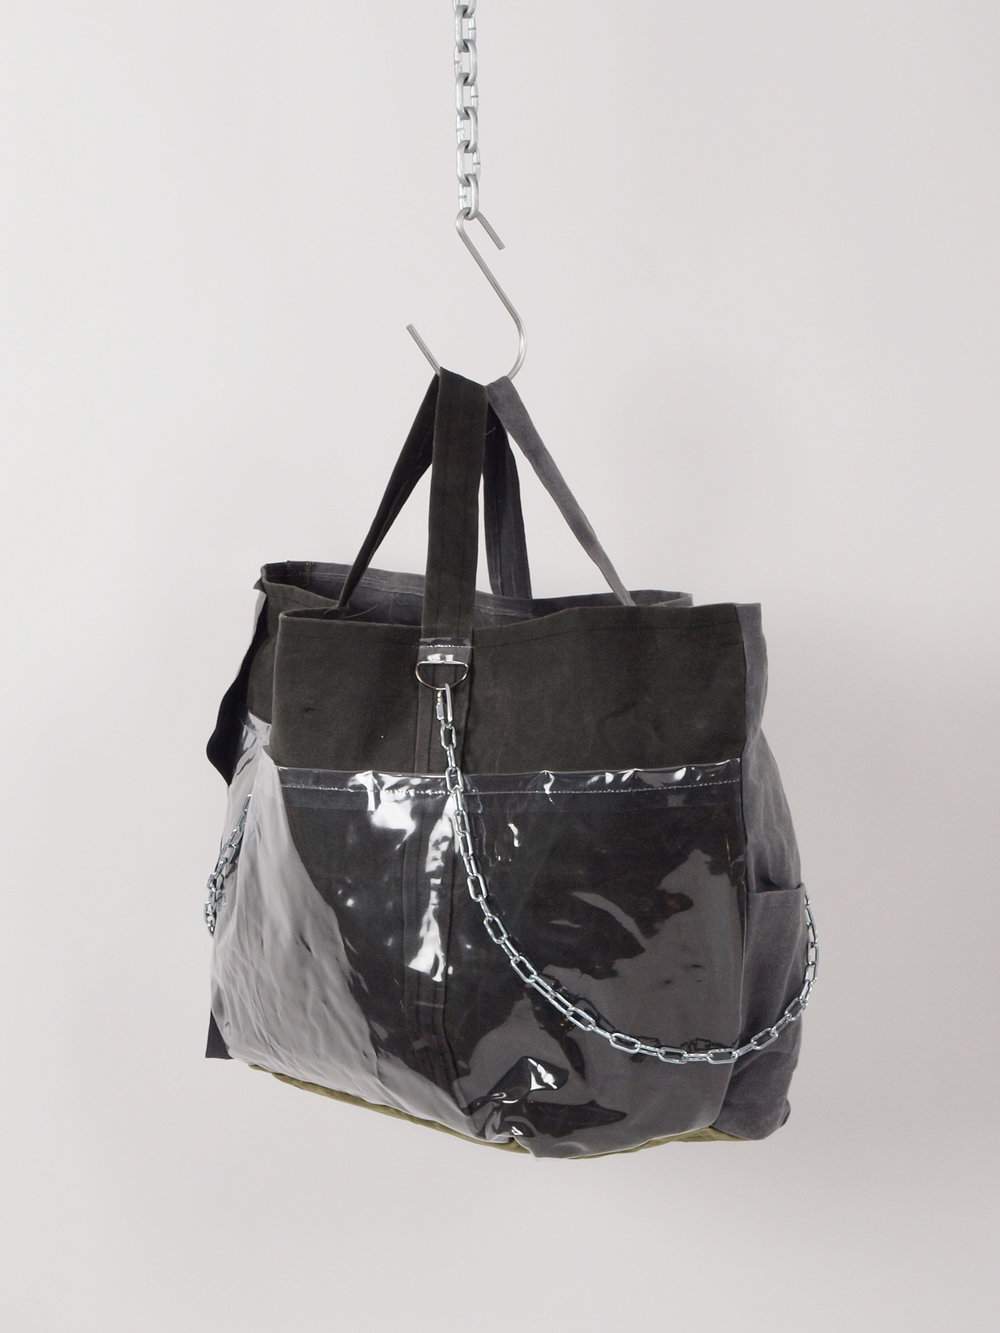 tri-color tote bag hb.jpg